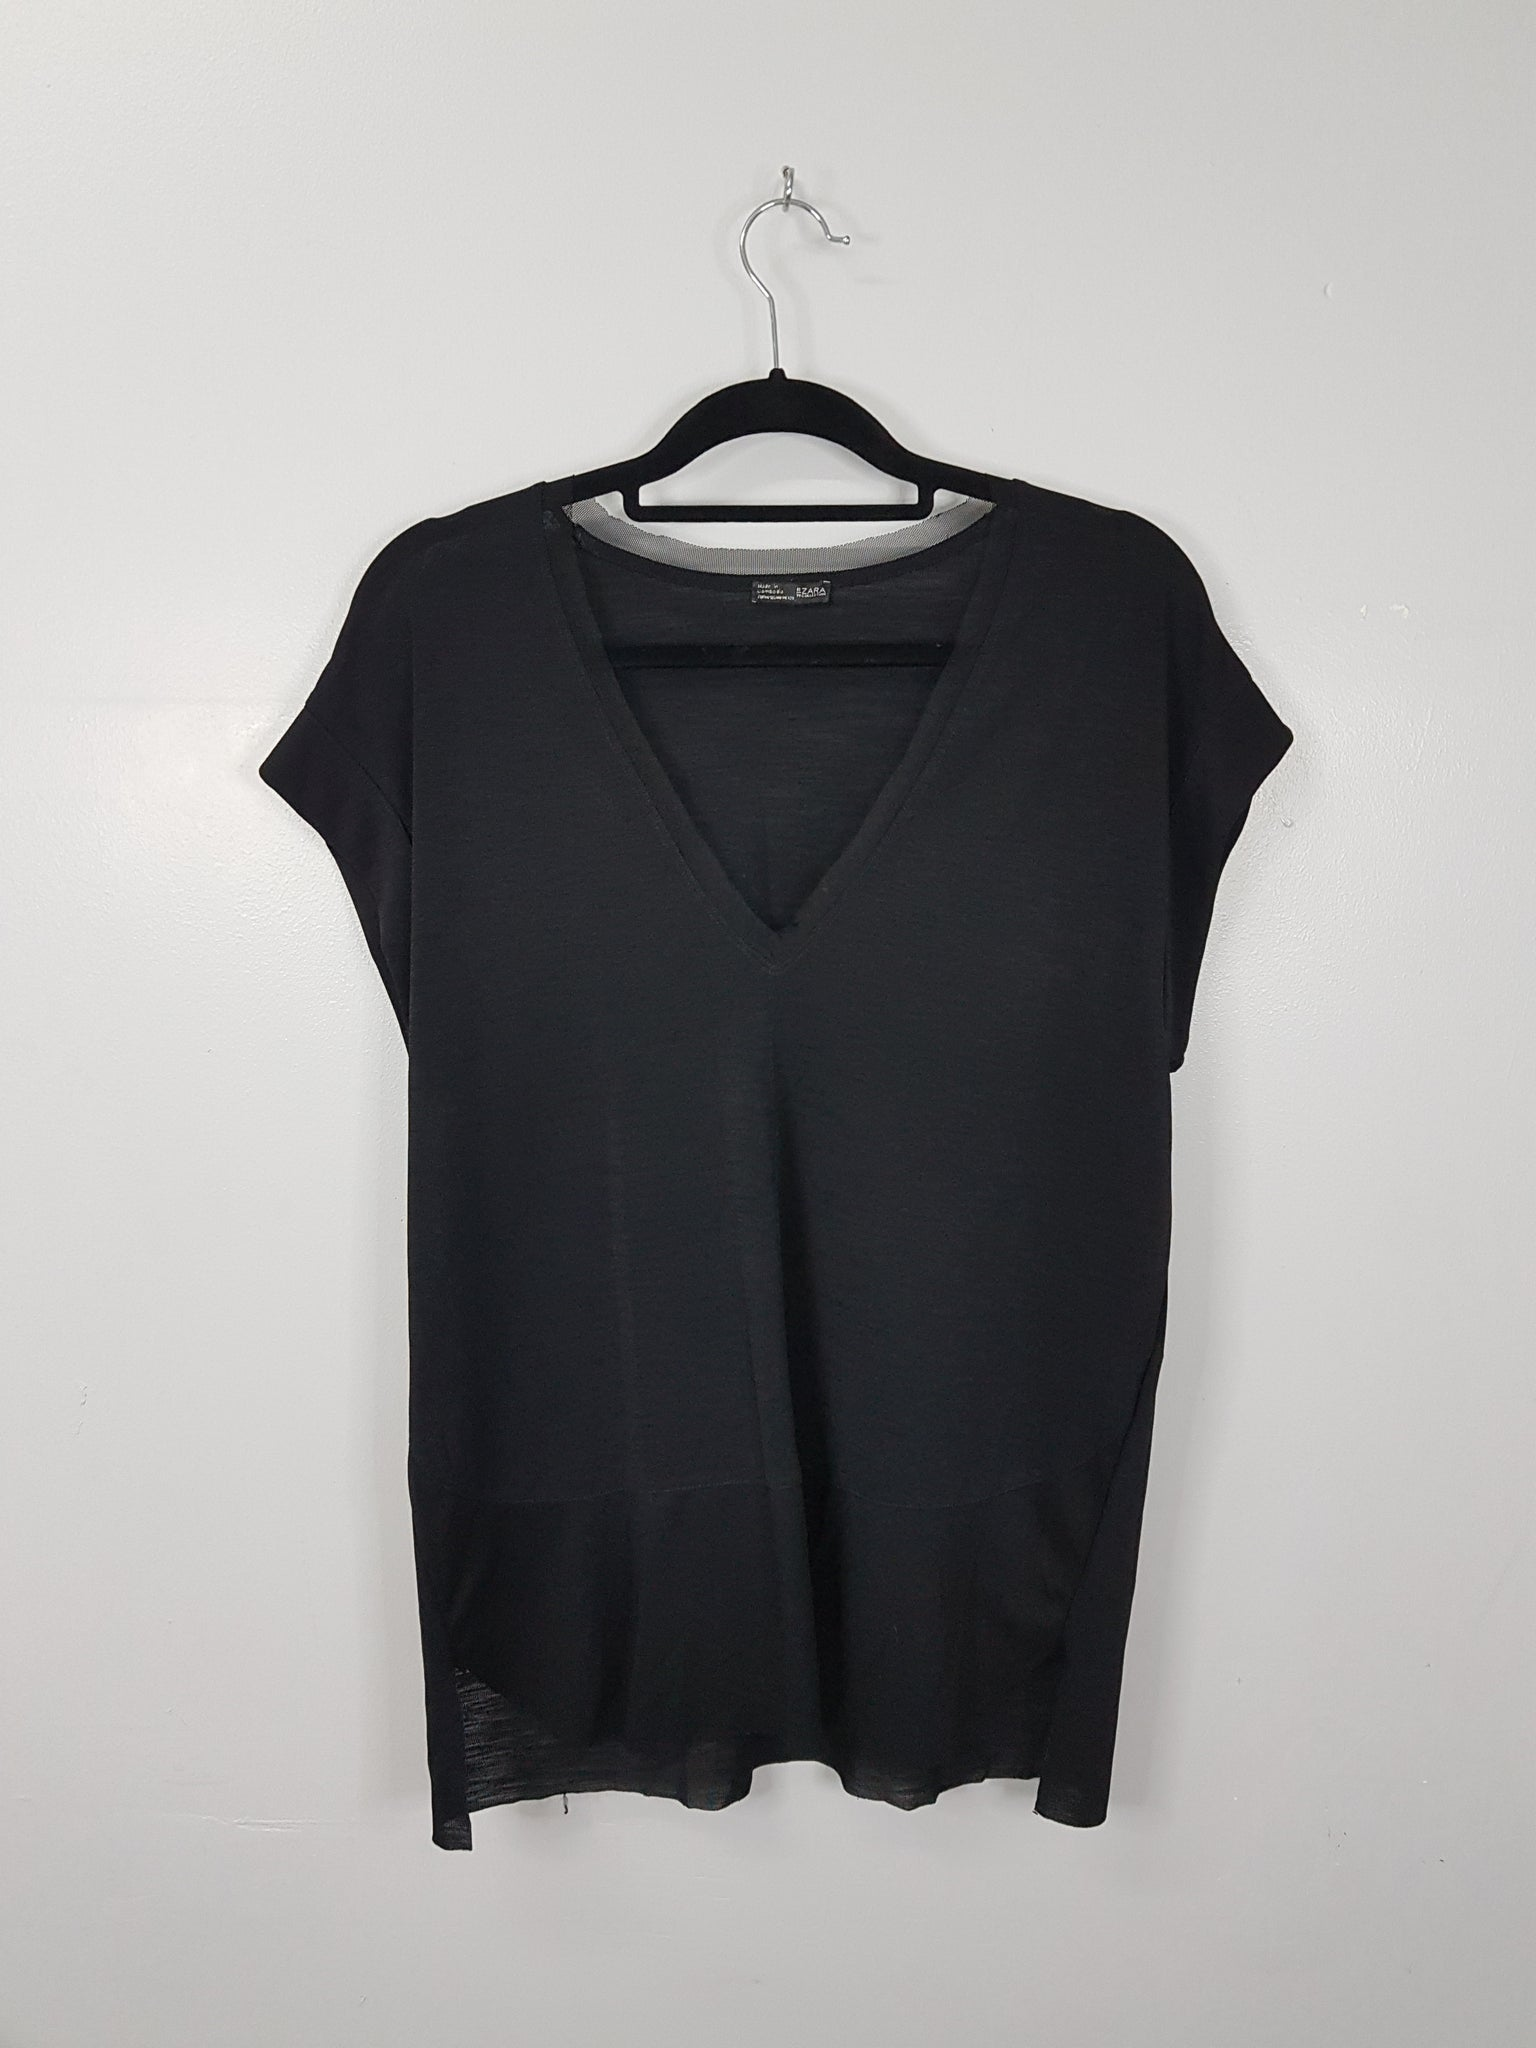 c2d49aef927 Zara black low v neck sleeveless blouse – Threads PH